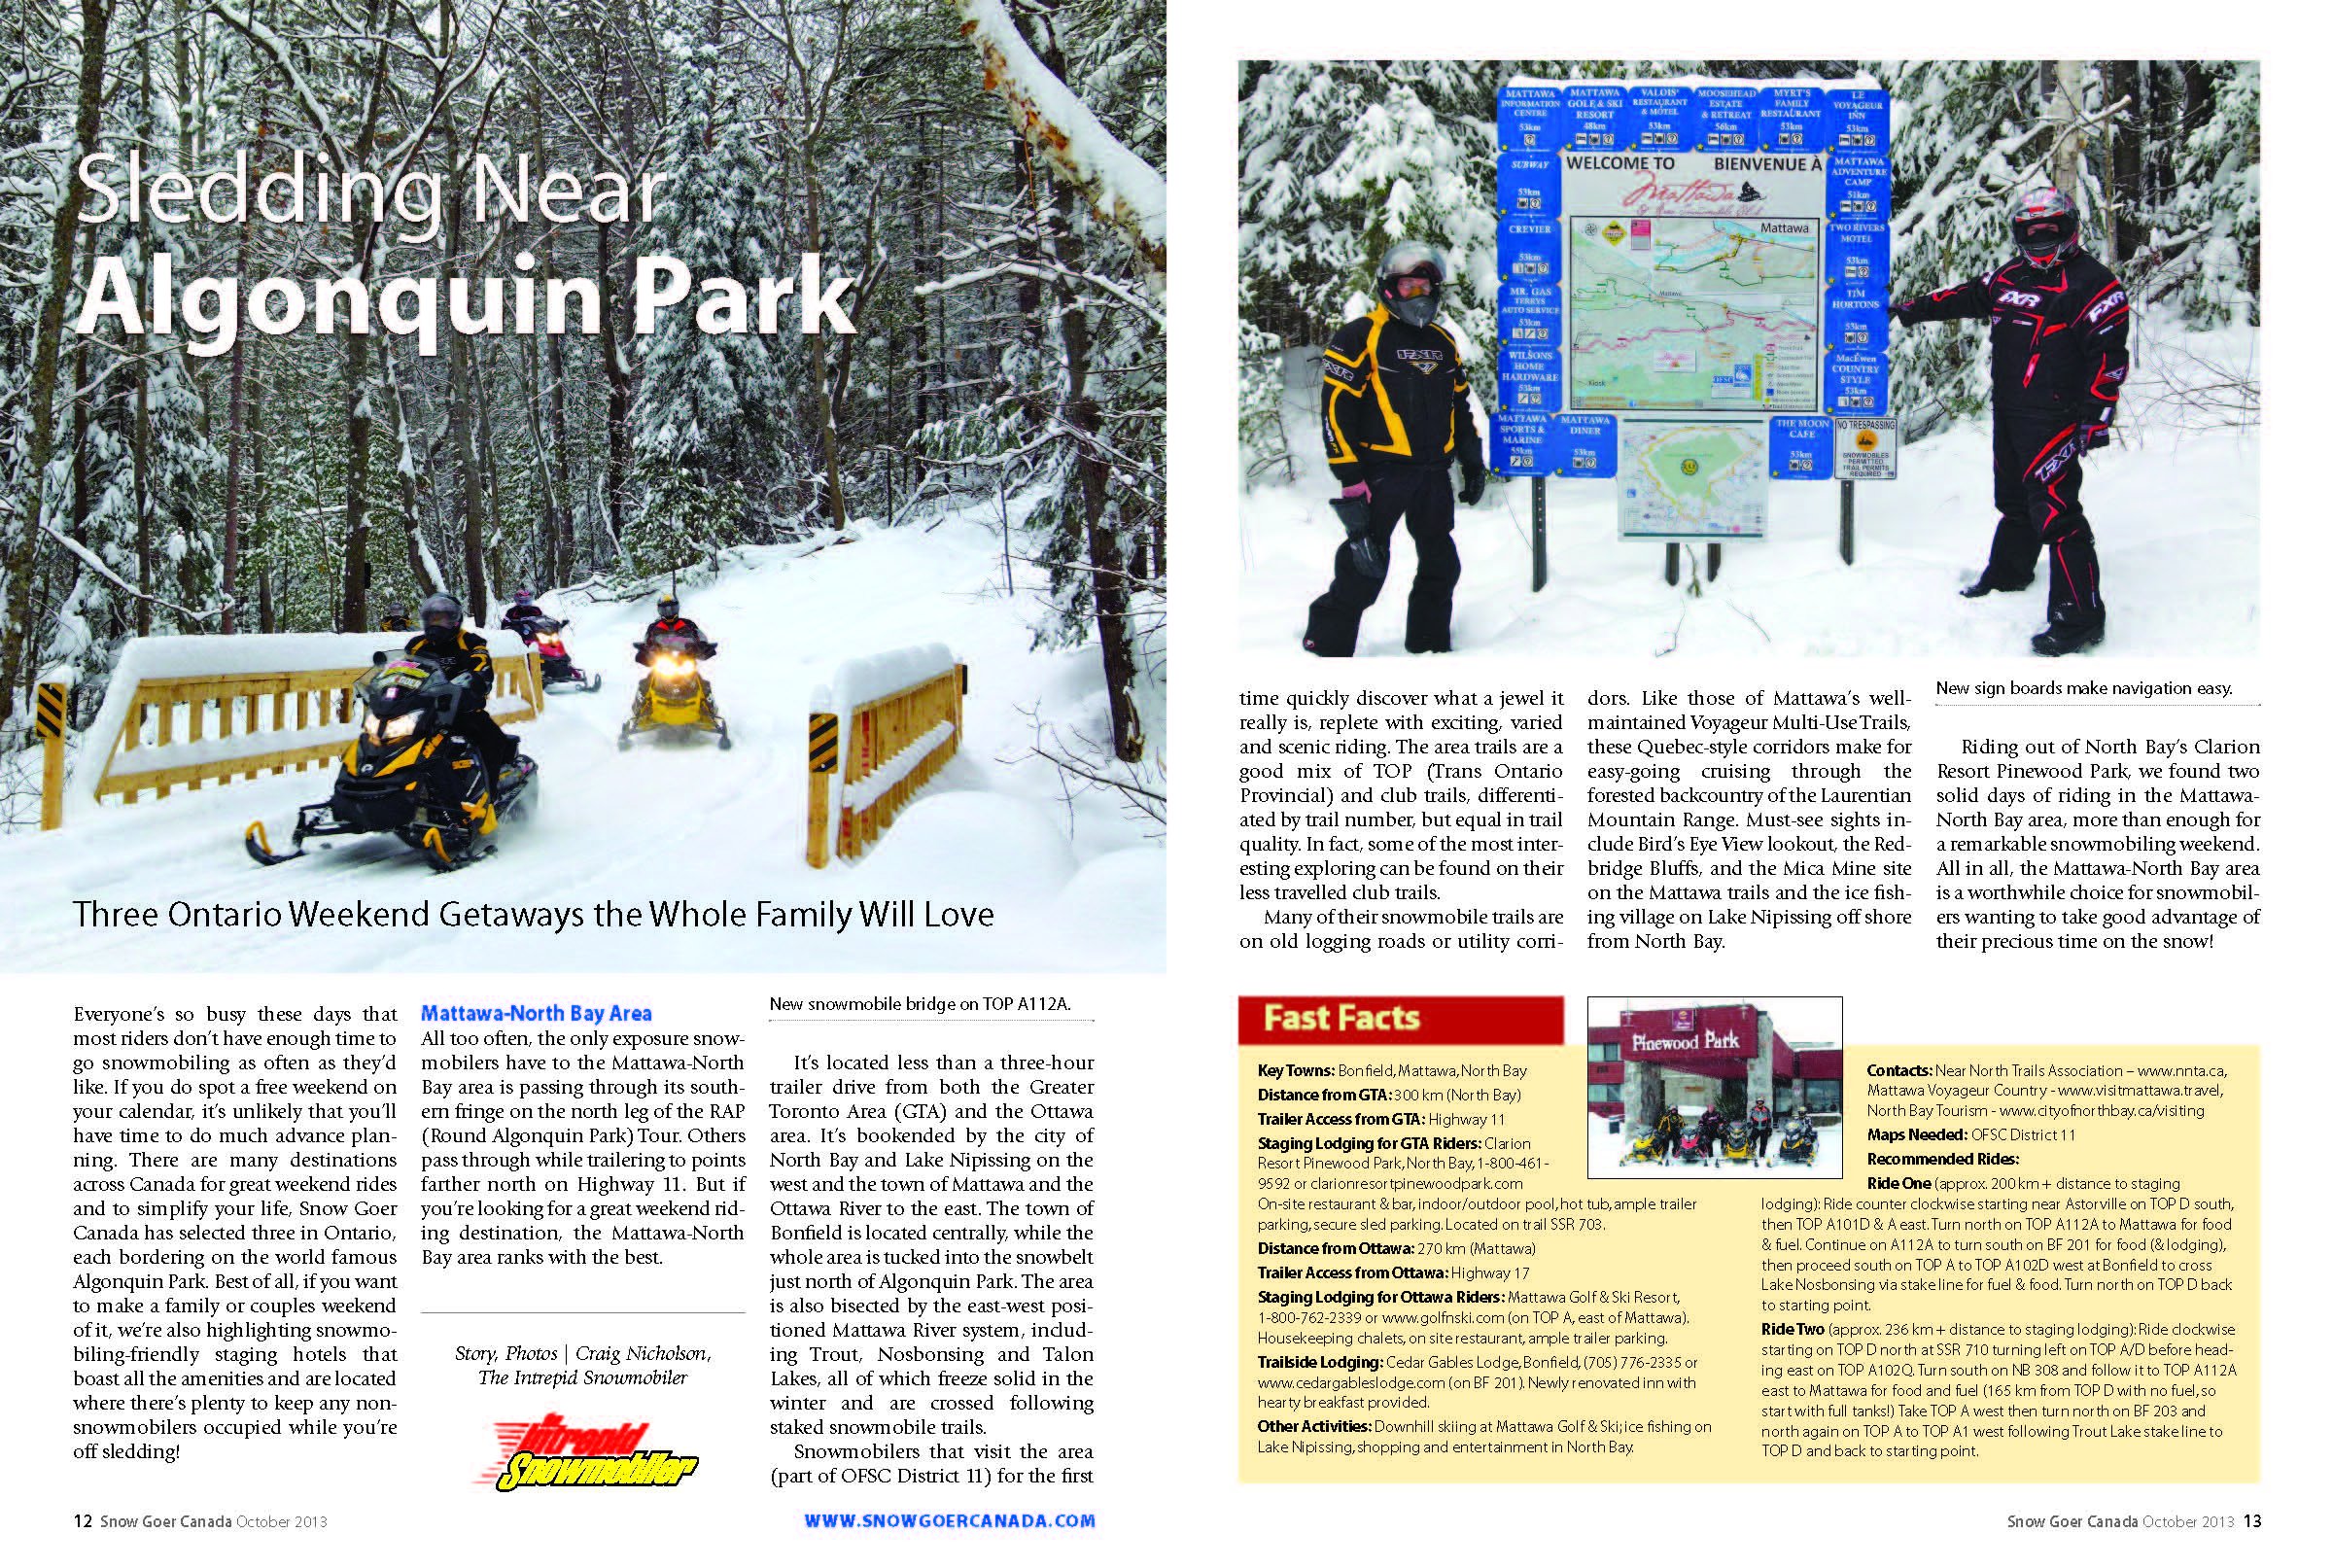 Snowmobiling Near Algonquin Park article